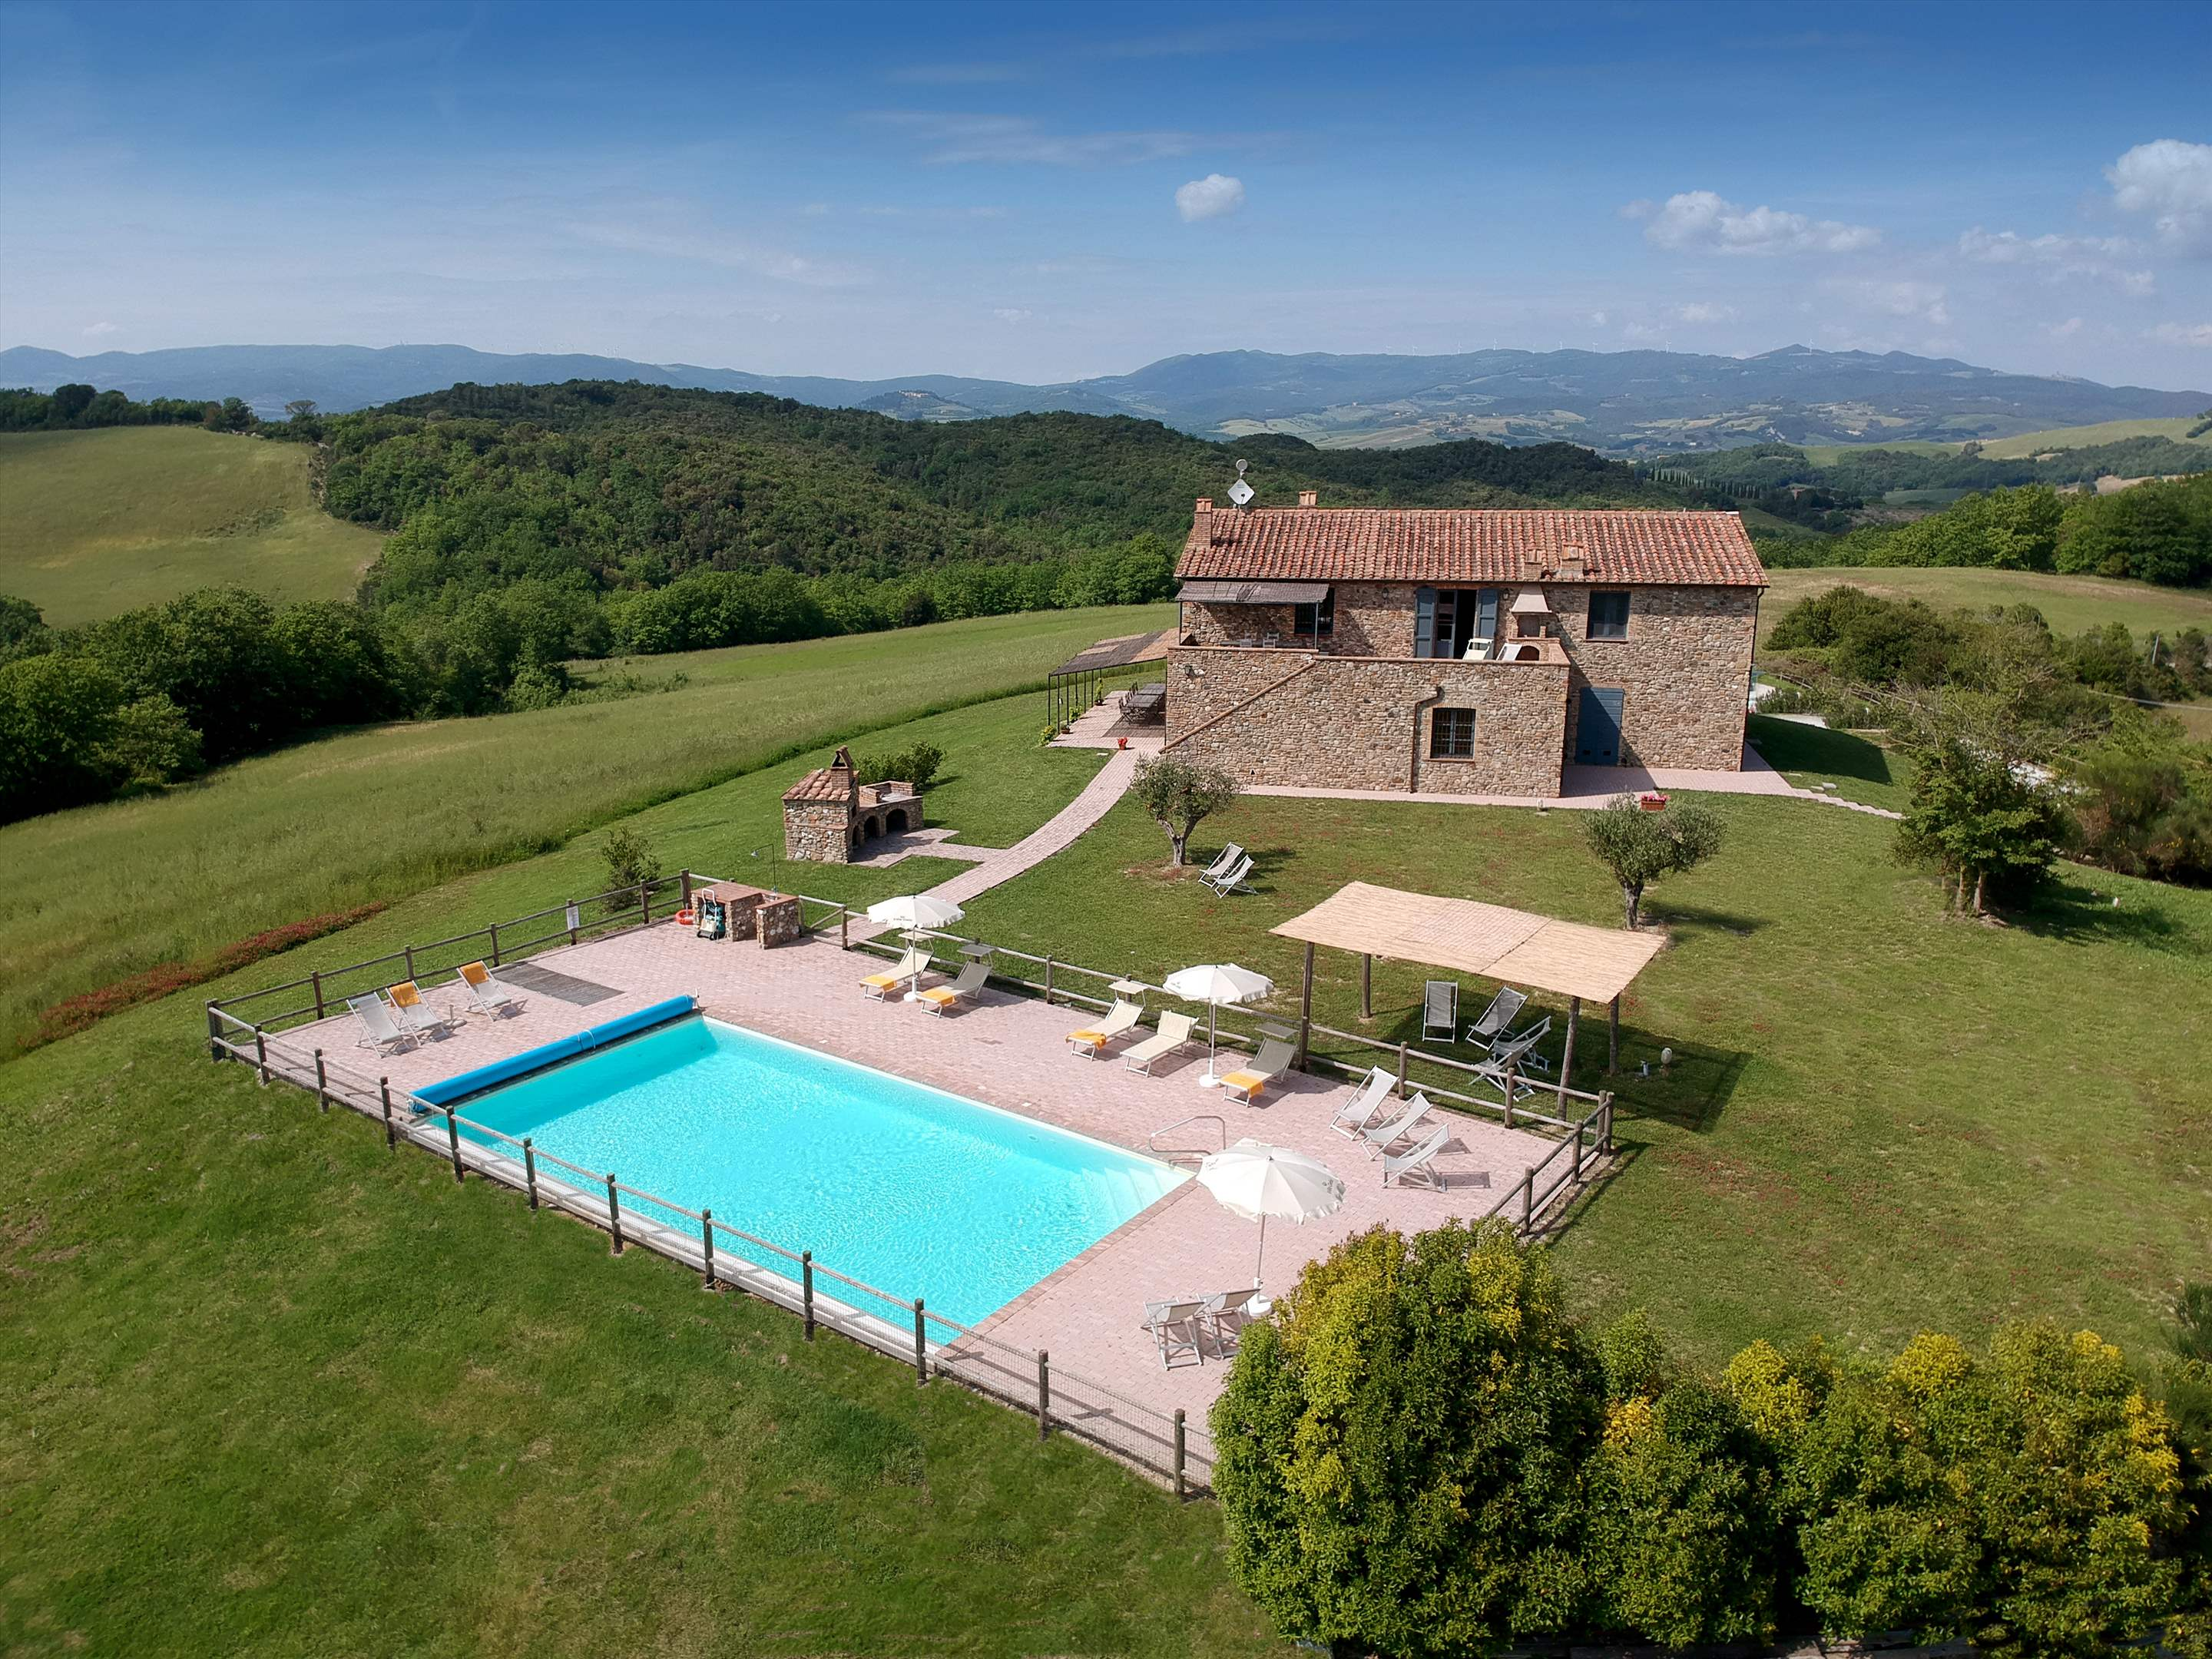 Podere Di Collina, Villa & Apts, 8 bedroom villa in Tuscany Coast, Tuscany